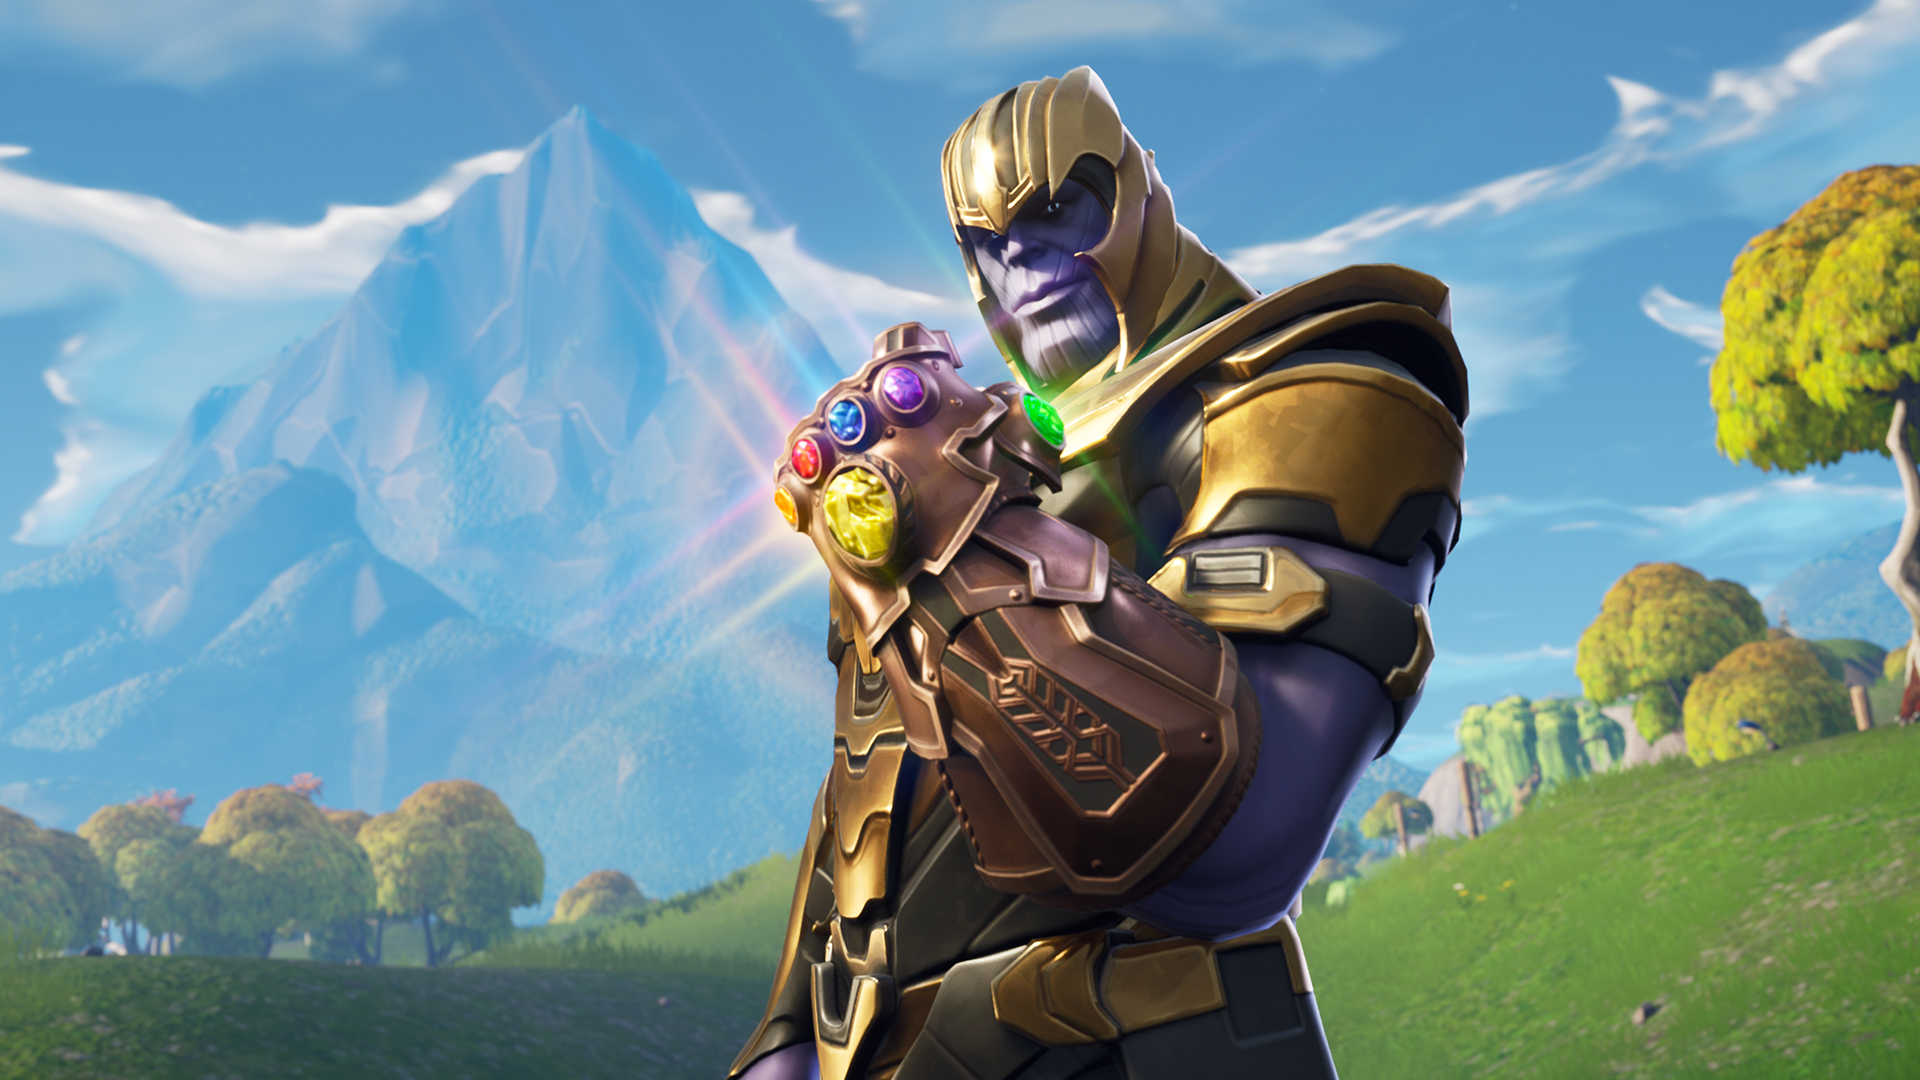 hd fortnite wallpapers pc smartphones - image fortnite hd